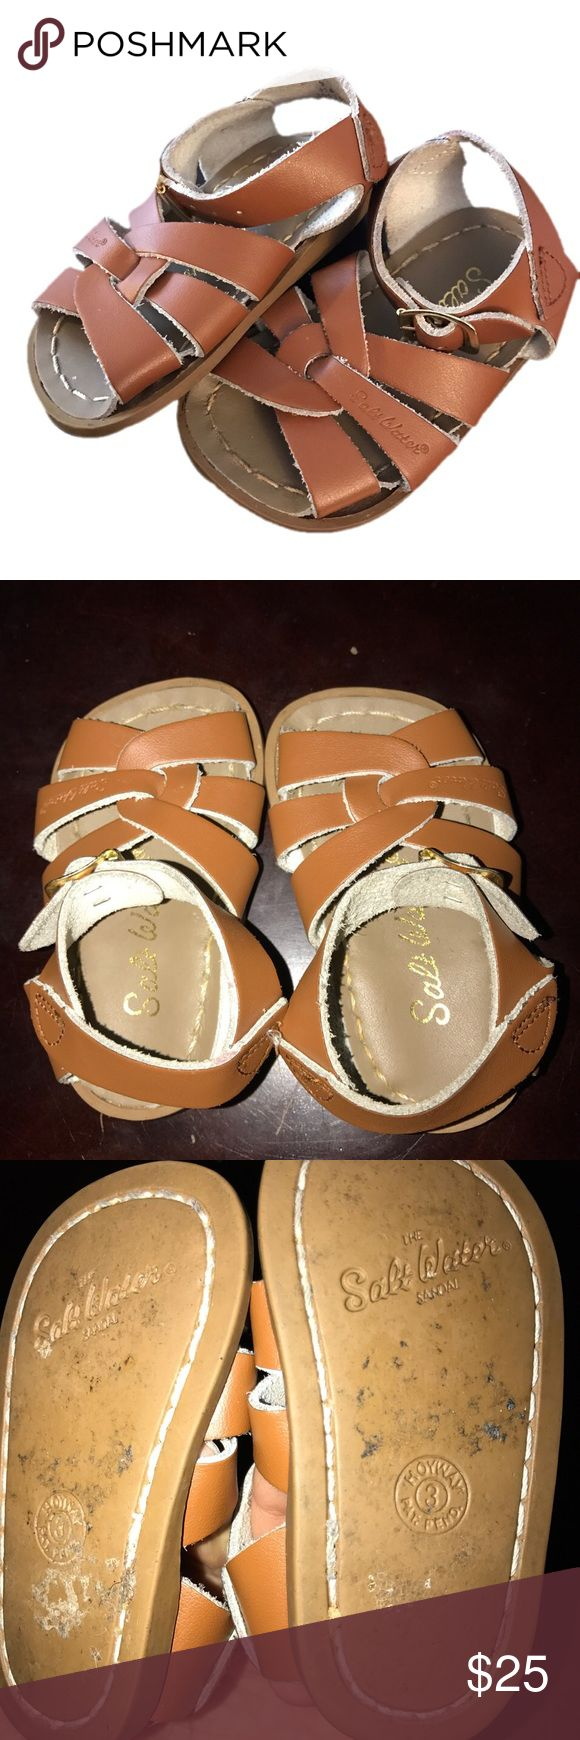 ⭐Salt Waters Size 3 Camel Color Tan Brown Sandals Salt Waters Size 3 Camel Color Tan Brown Sandals. Have dirty bottoms but shoes itself are in great shape. Salt Water Sandals by Hoy Shoes Sandals & Flip Flops